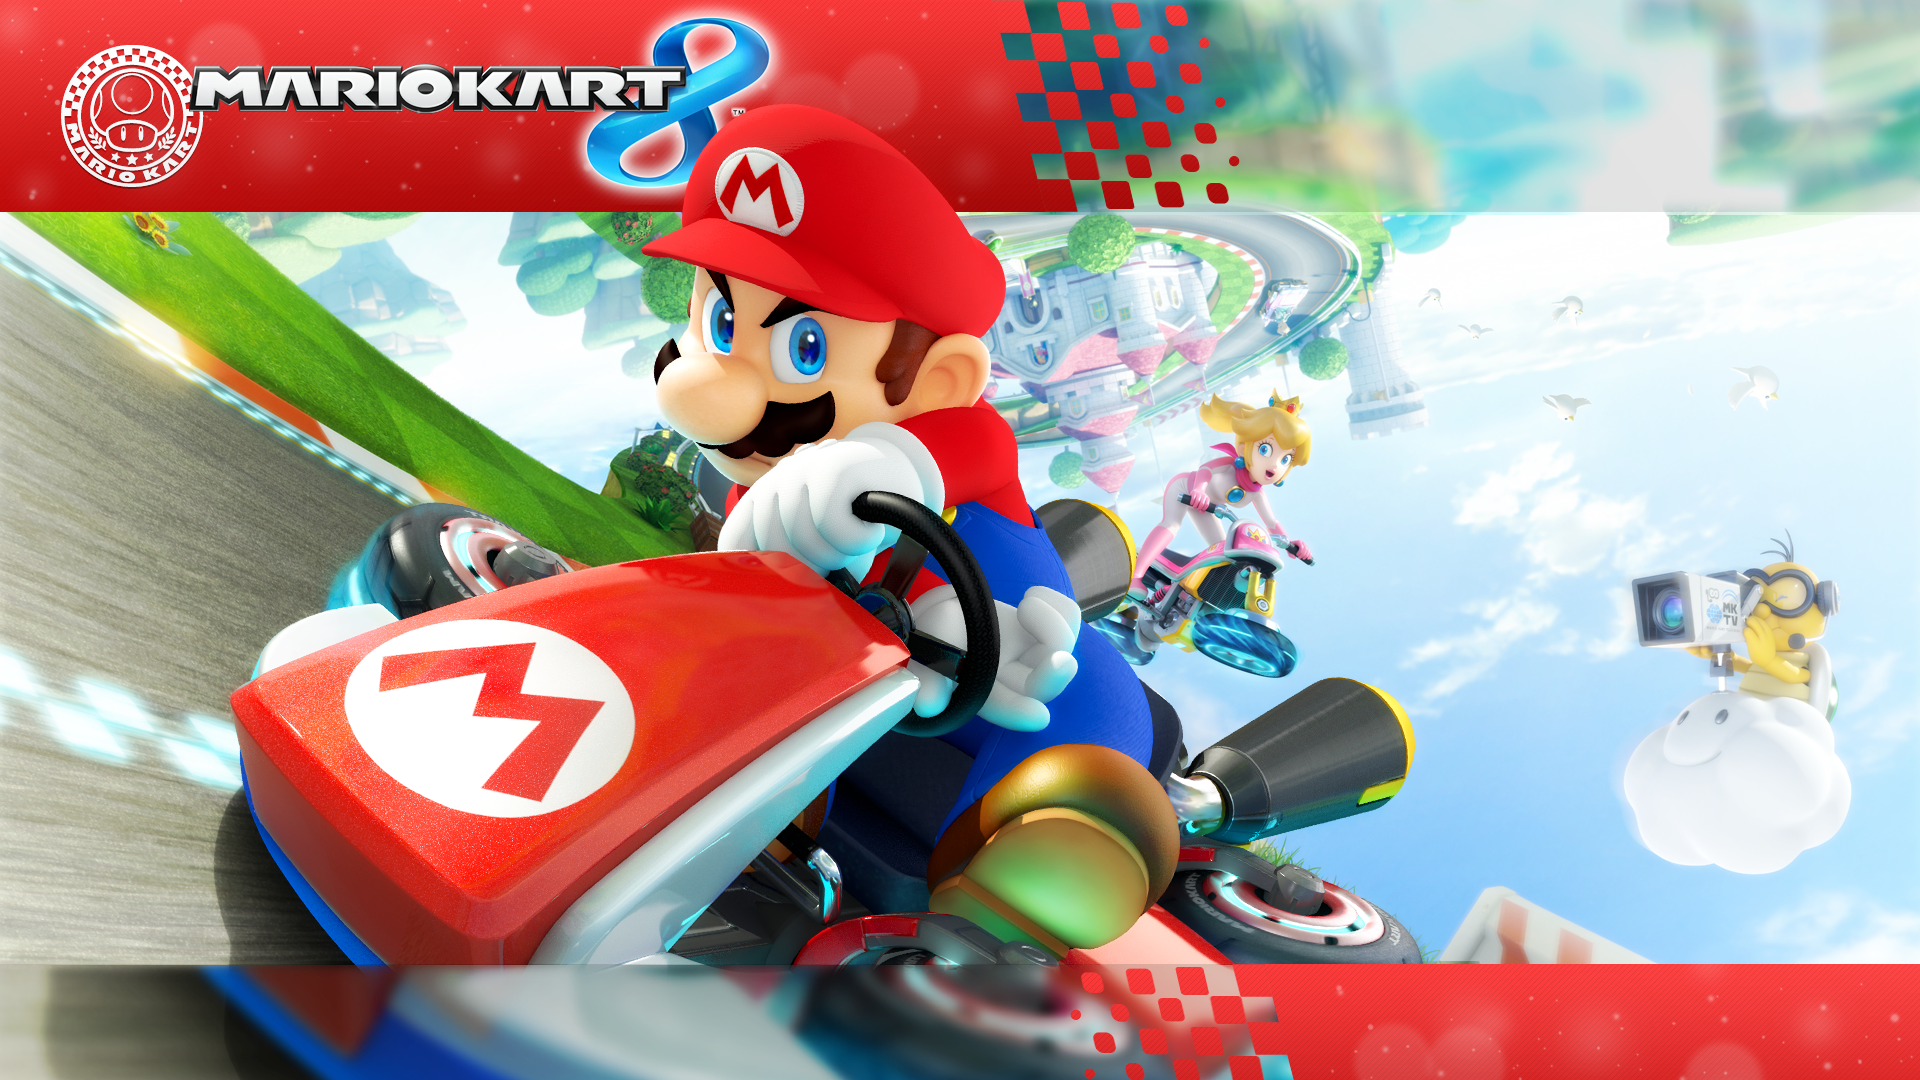 Free Download 1920 X 1080 Mario Kart 8 Wallpaper By Maxigamer